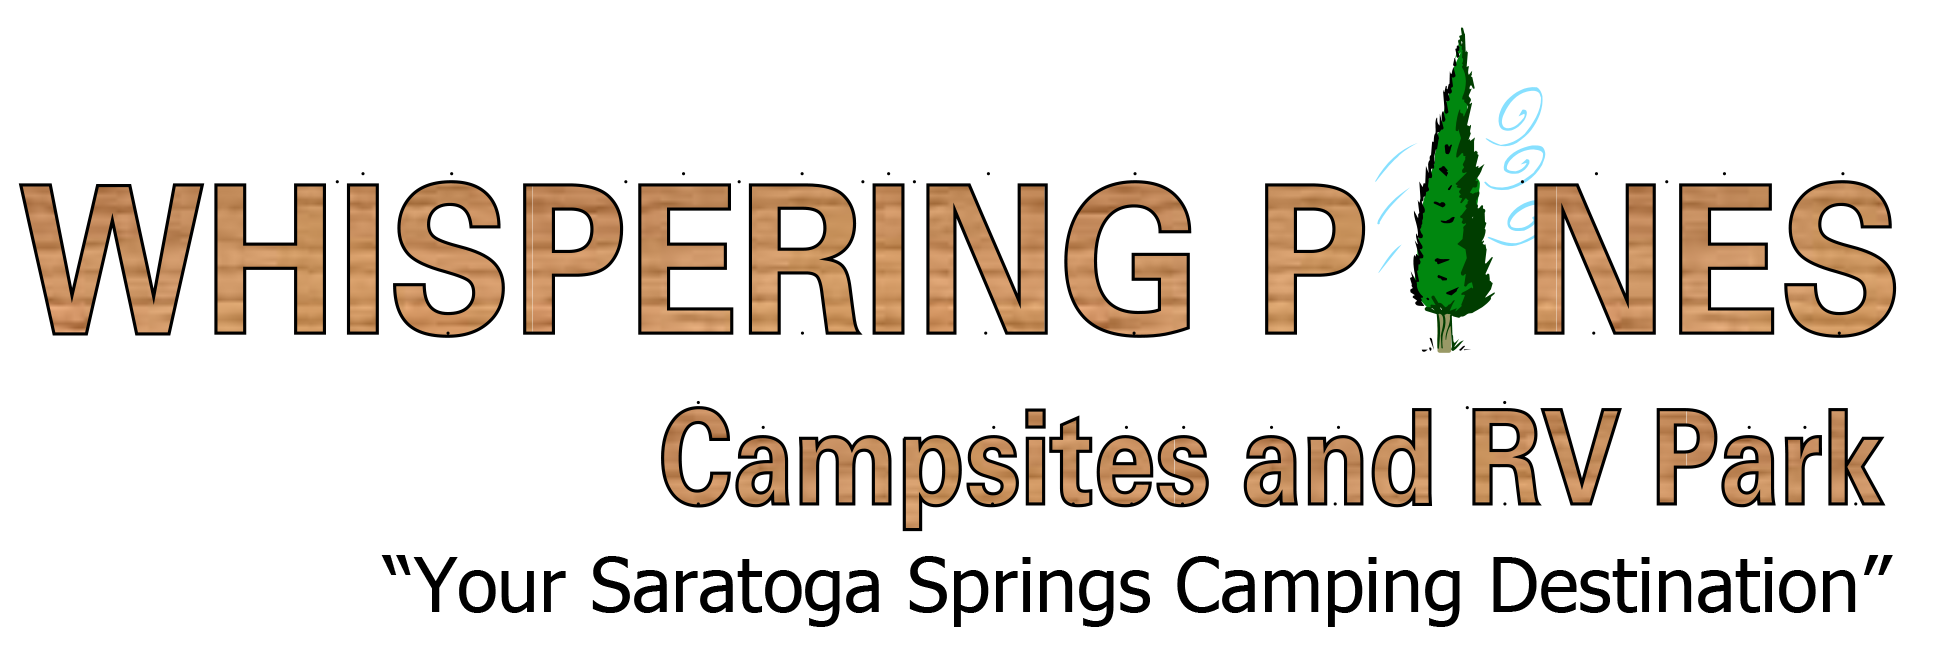 Whispering Pines - Campsites and RV Park